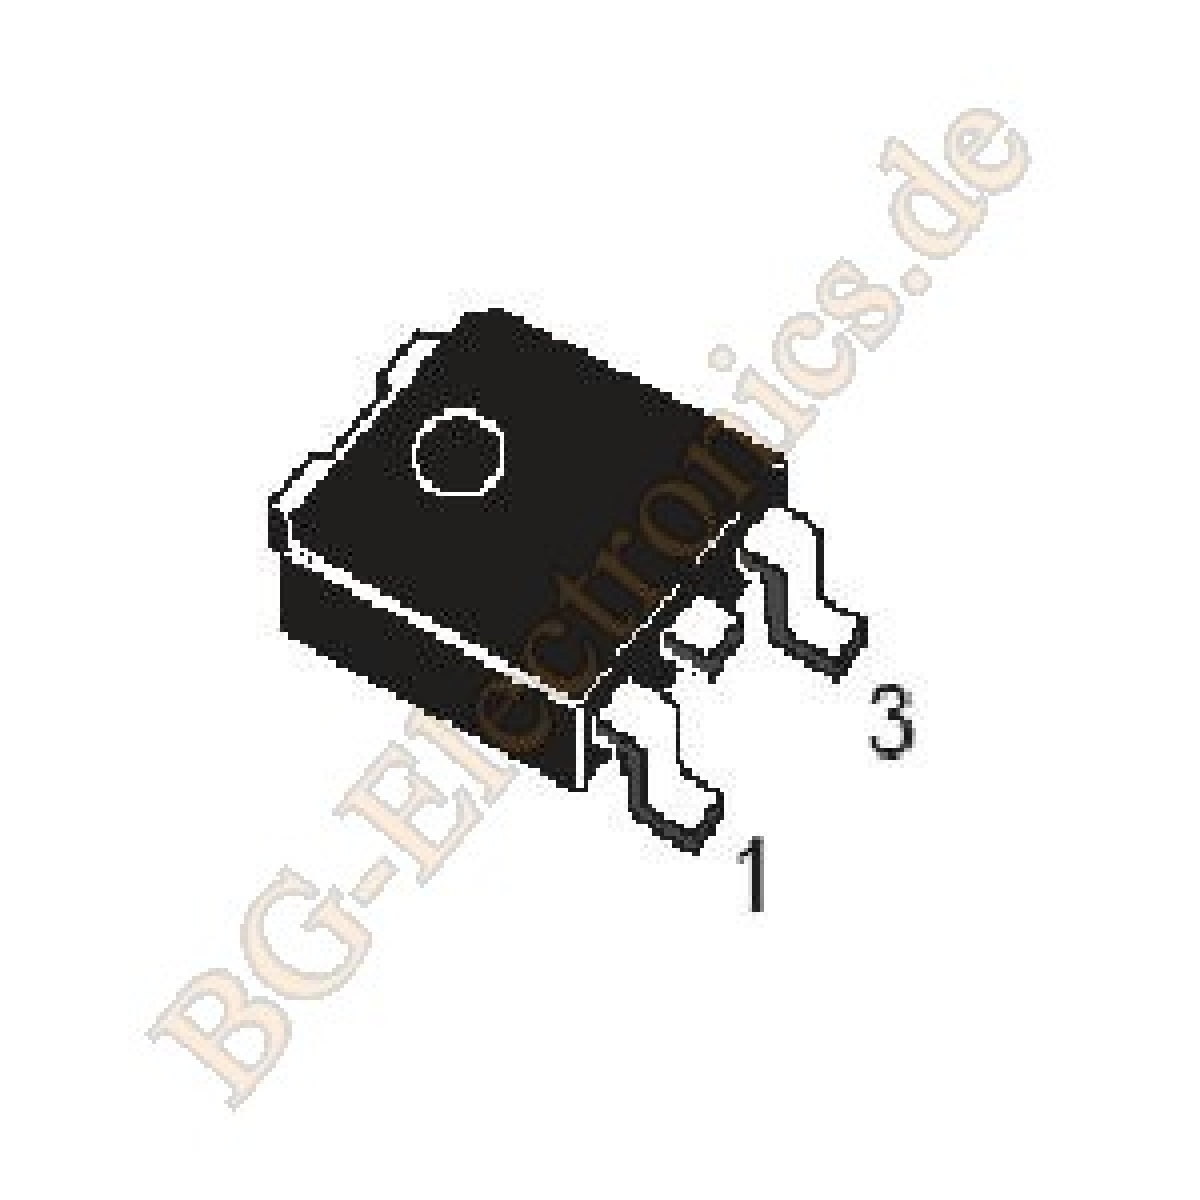 10-x-LM317SX-Voltage-Regulators-1-2-37V-Adj-Positive-NS-D-PAK-10pcs